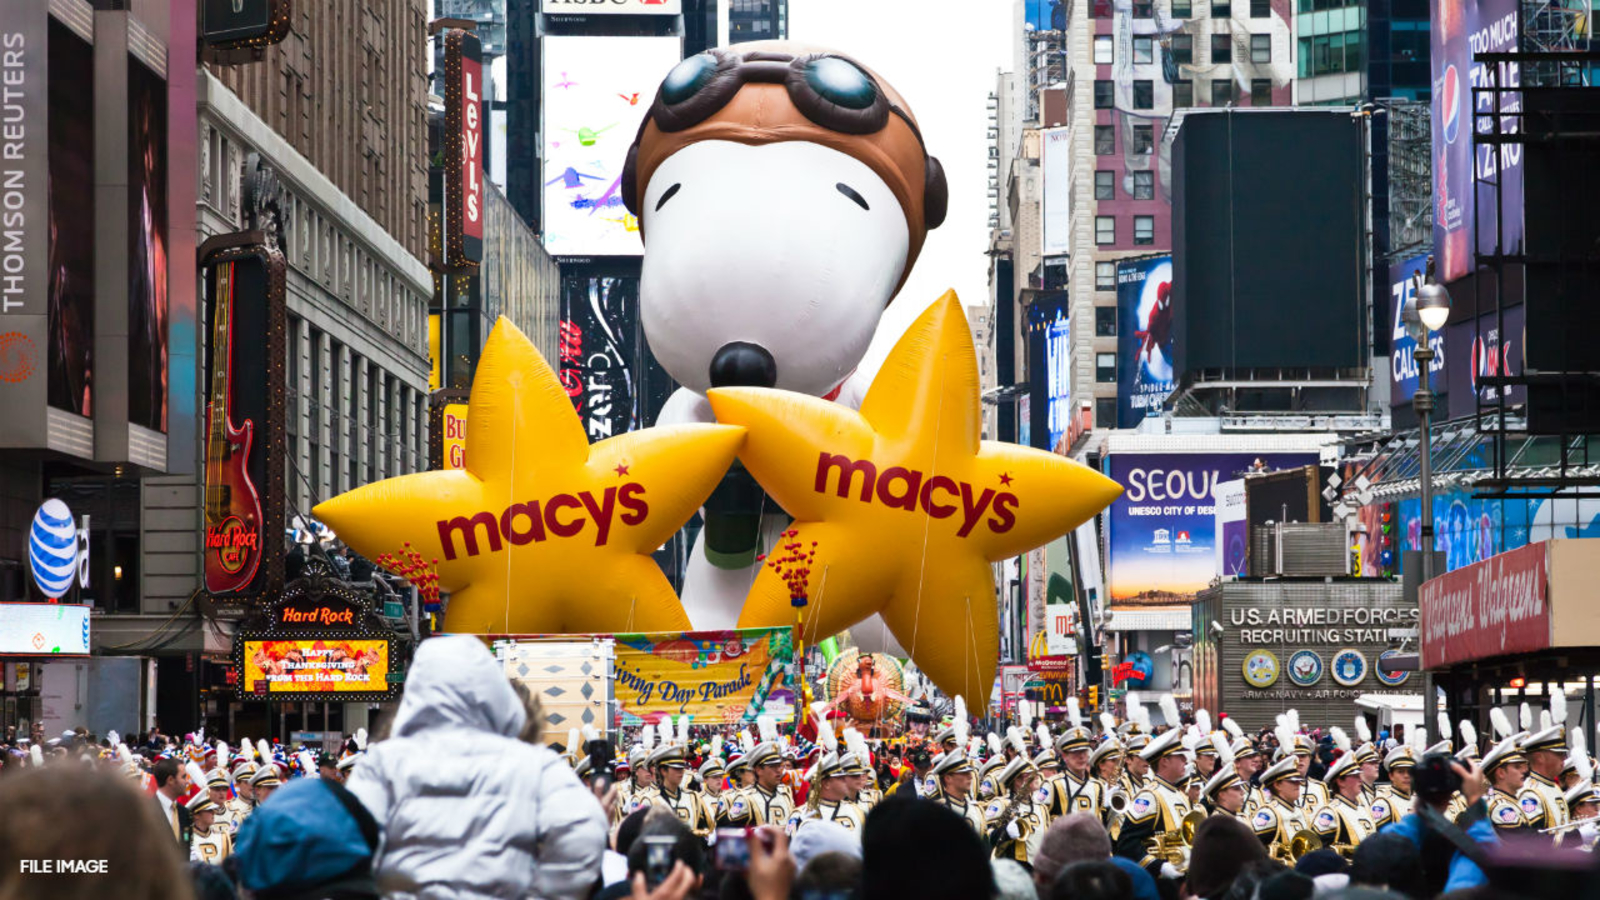 Macy's Thanksgiving Day Parade will be very different this year amid  coronavirus pandemic - ABC7 New York